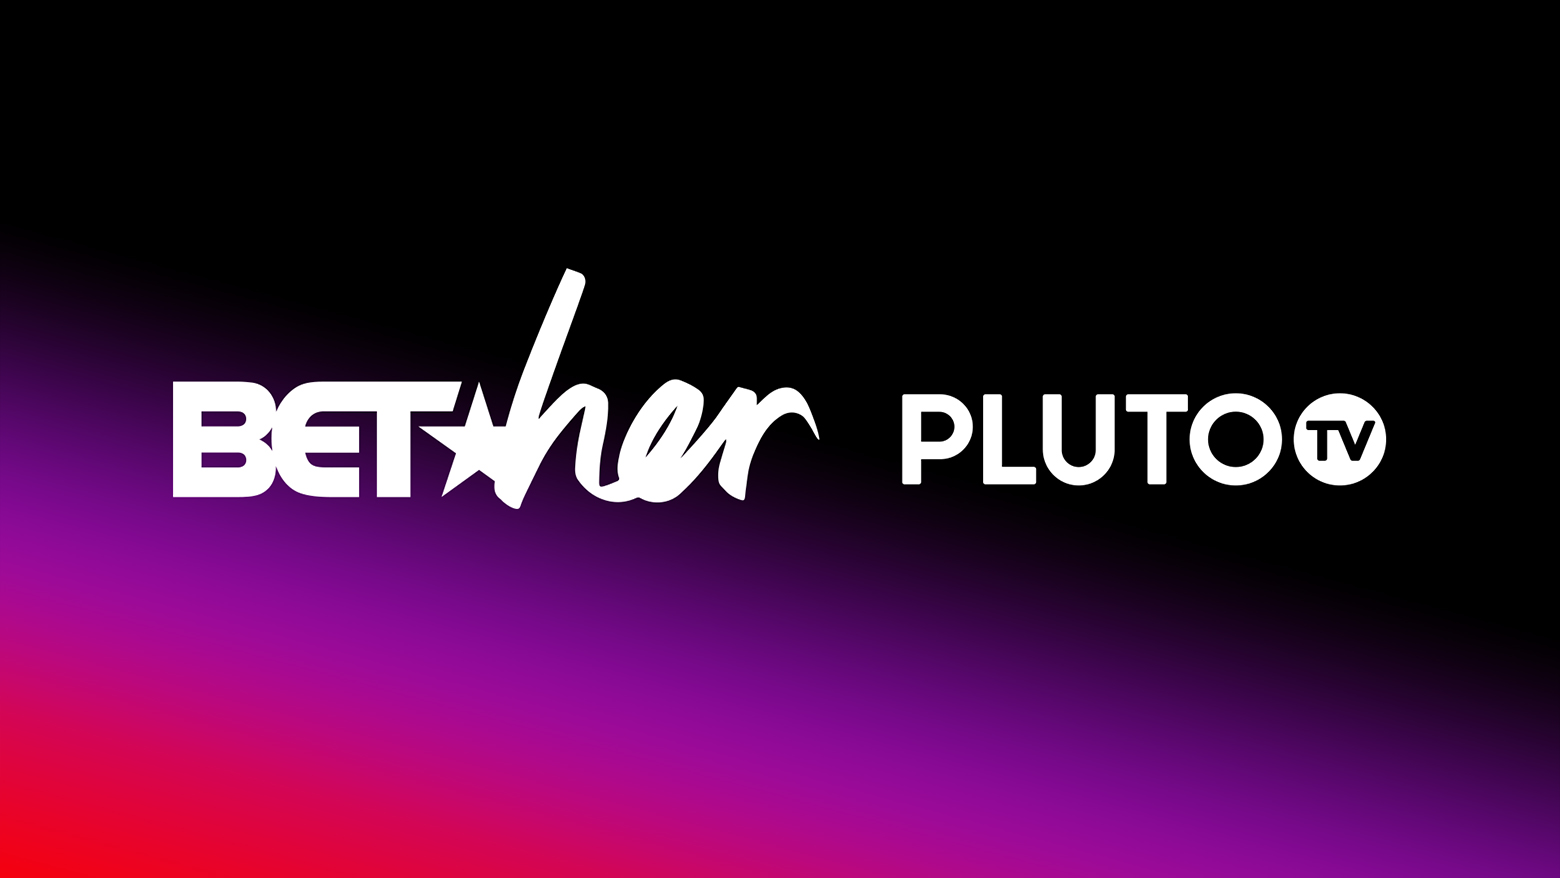 is bet on pluto tv